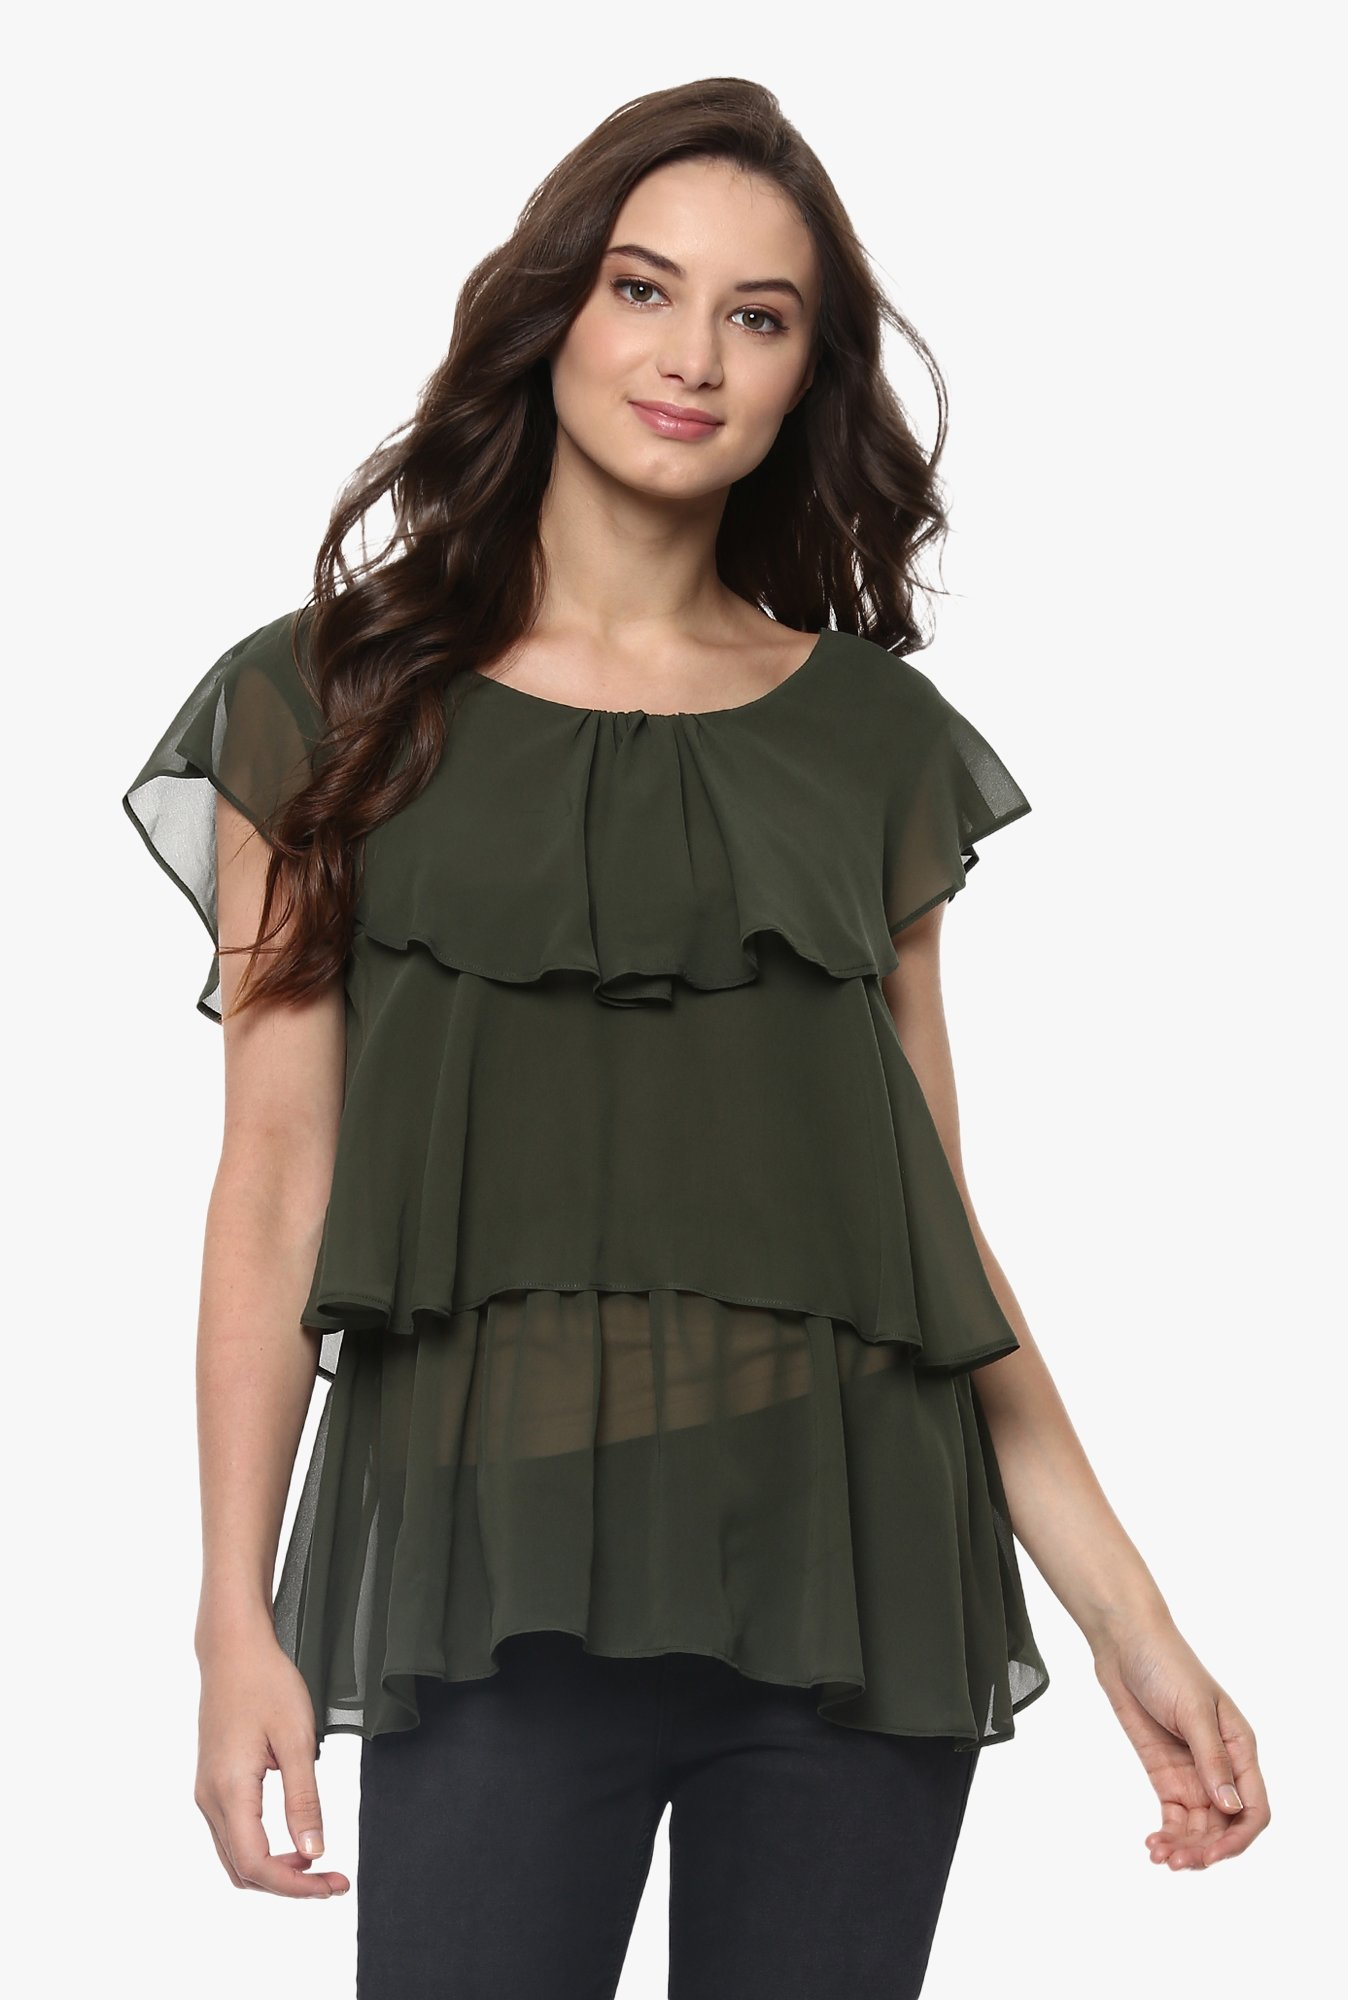 Pannkh Green Polyester Top